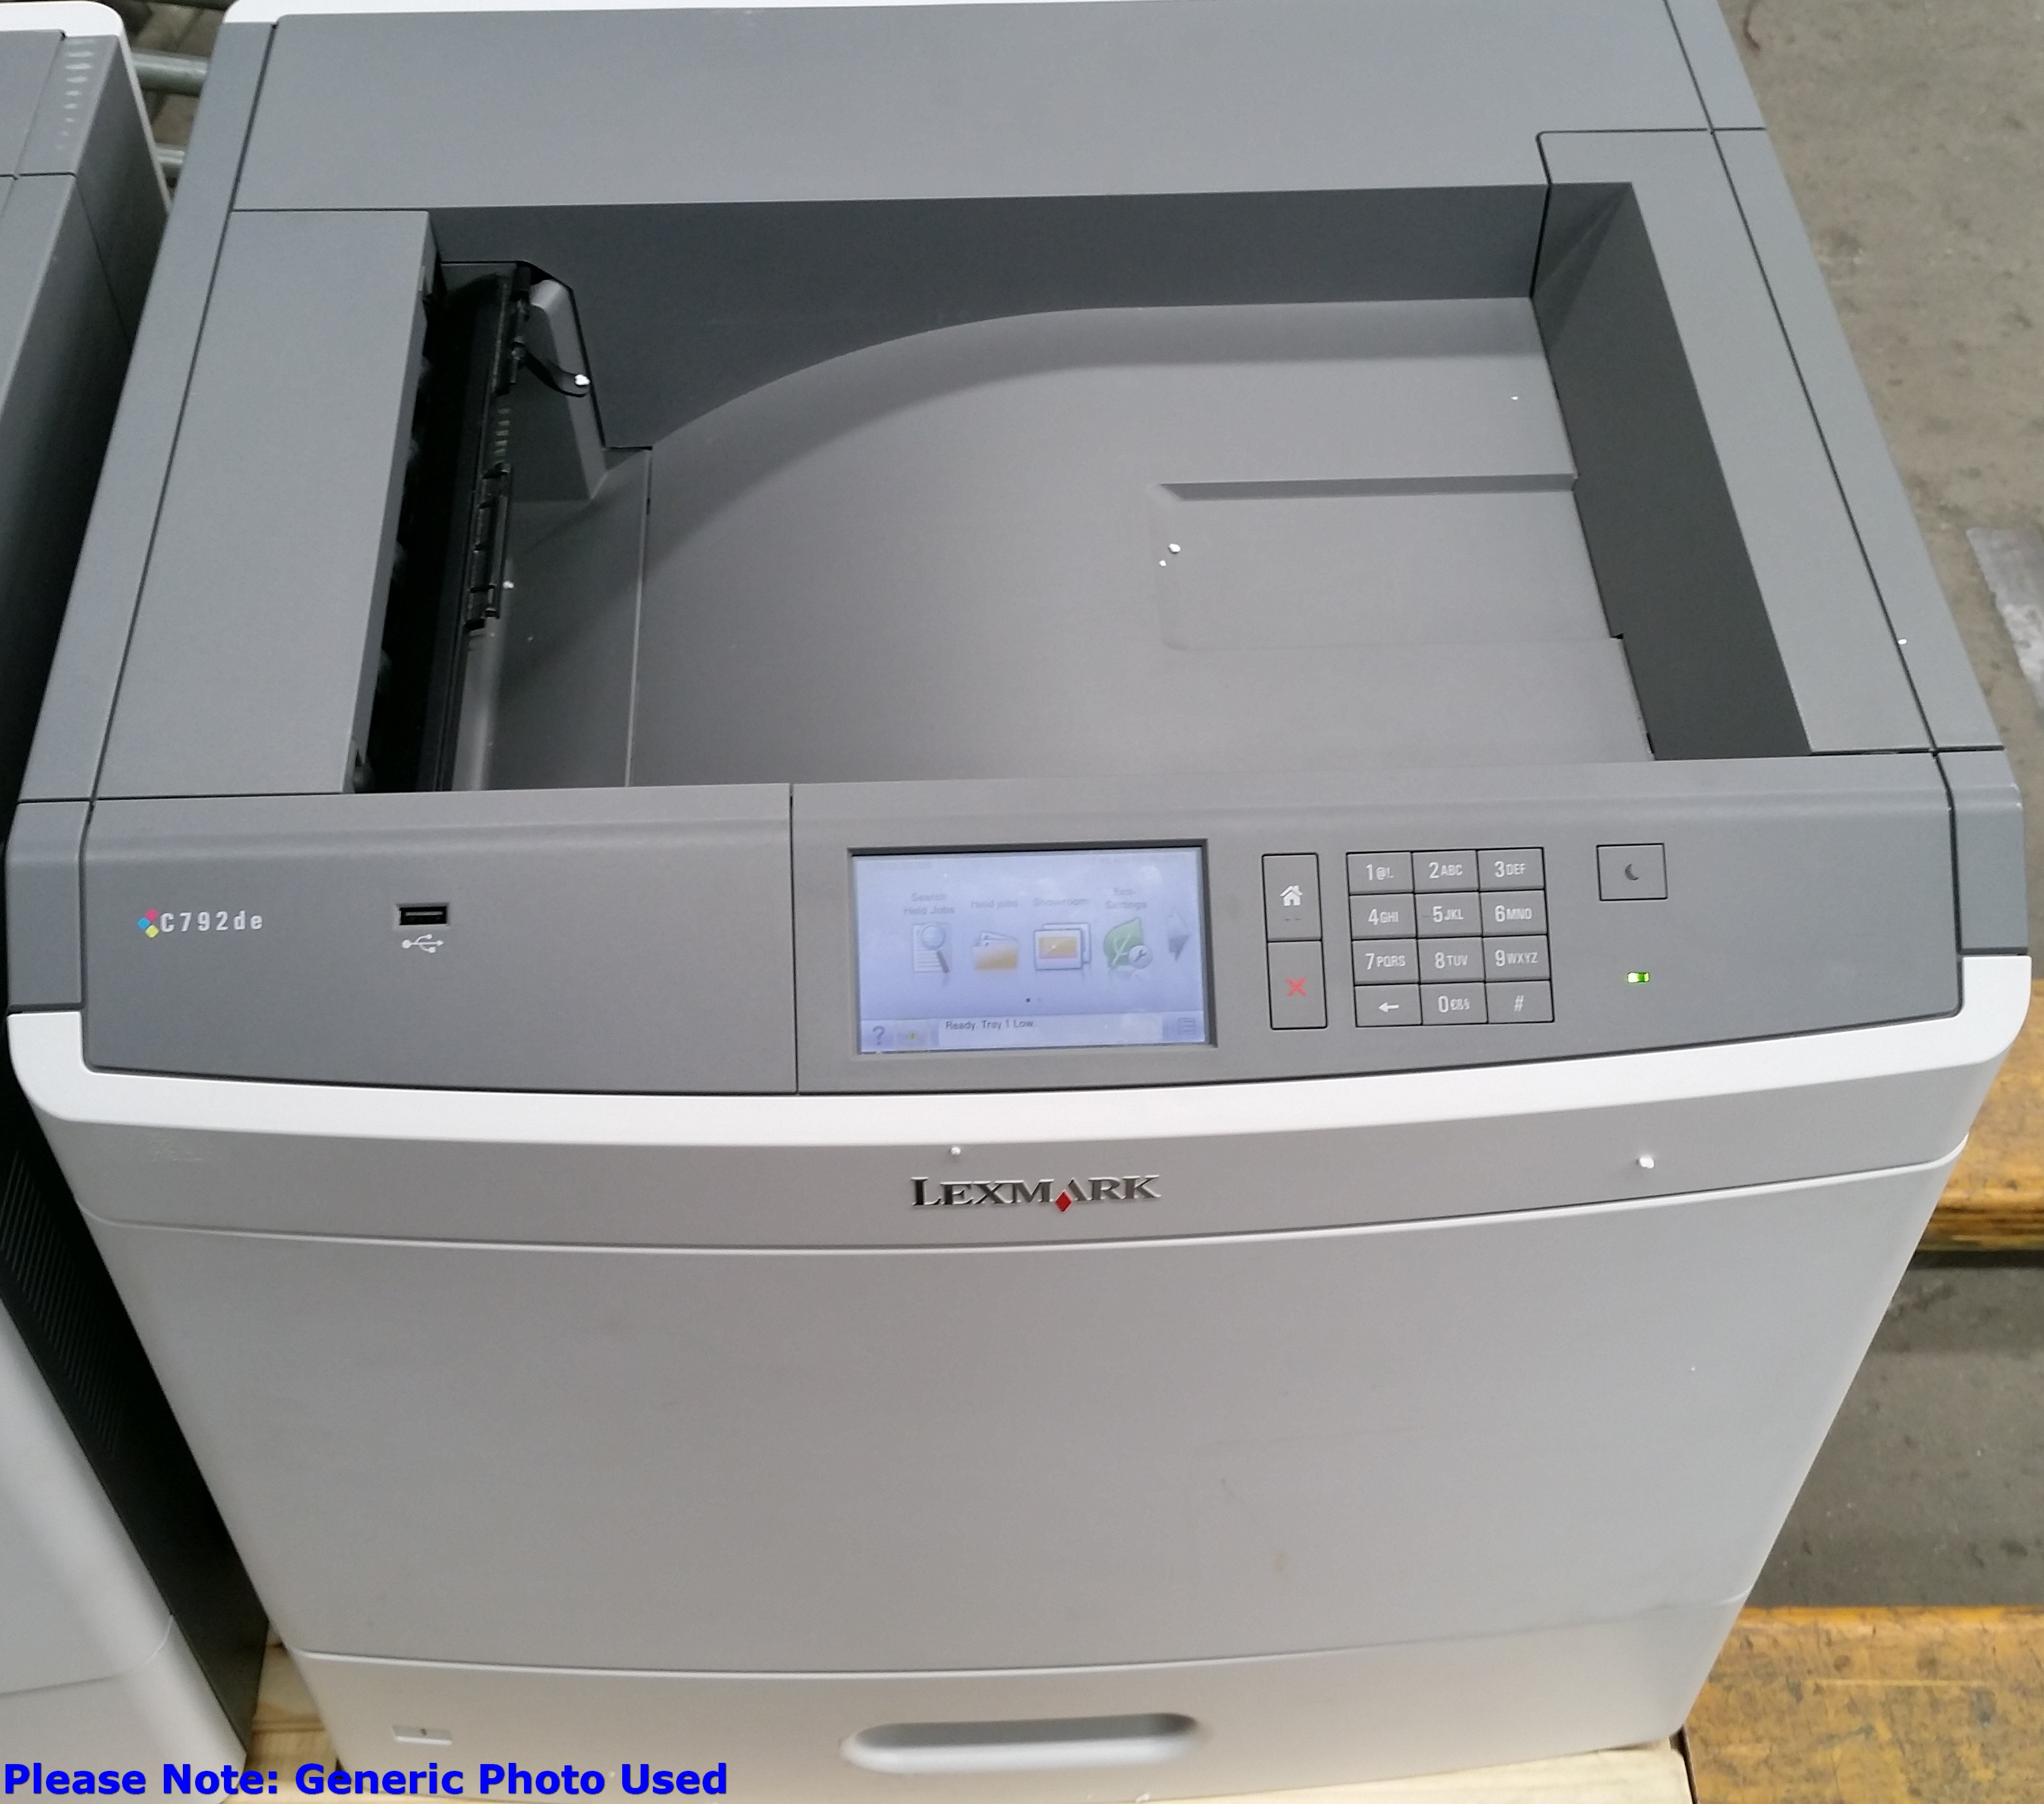 LEXMARK C792 PRINTER DRIVERS FOR PC